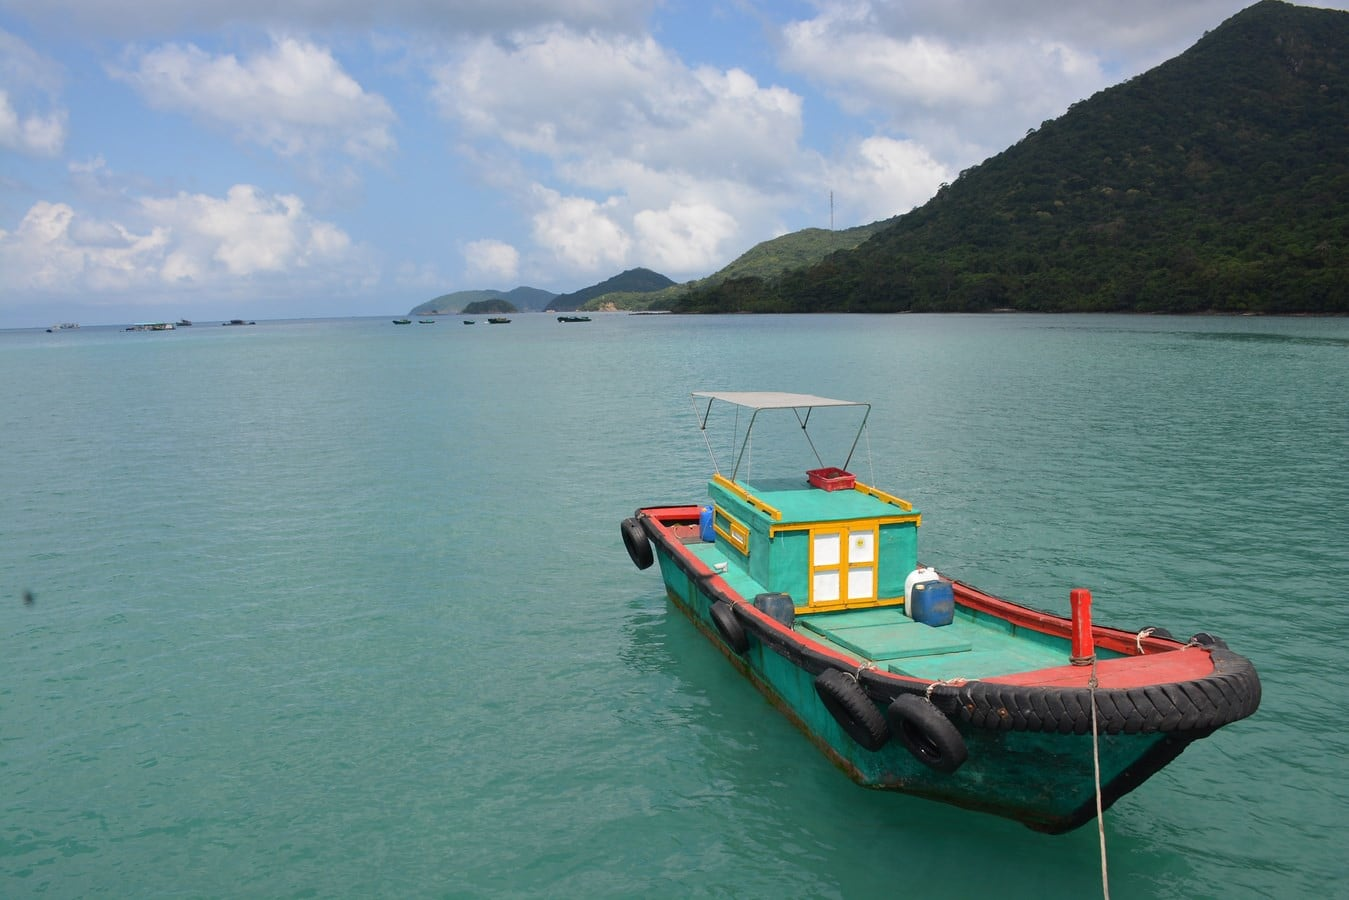 Image of a boat on the water at Port of Ben Dam, Con Dao Island in Vietnam